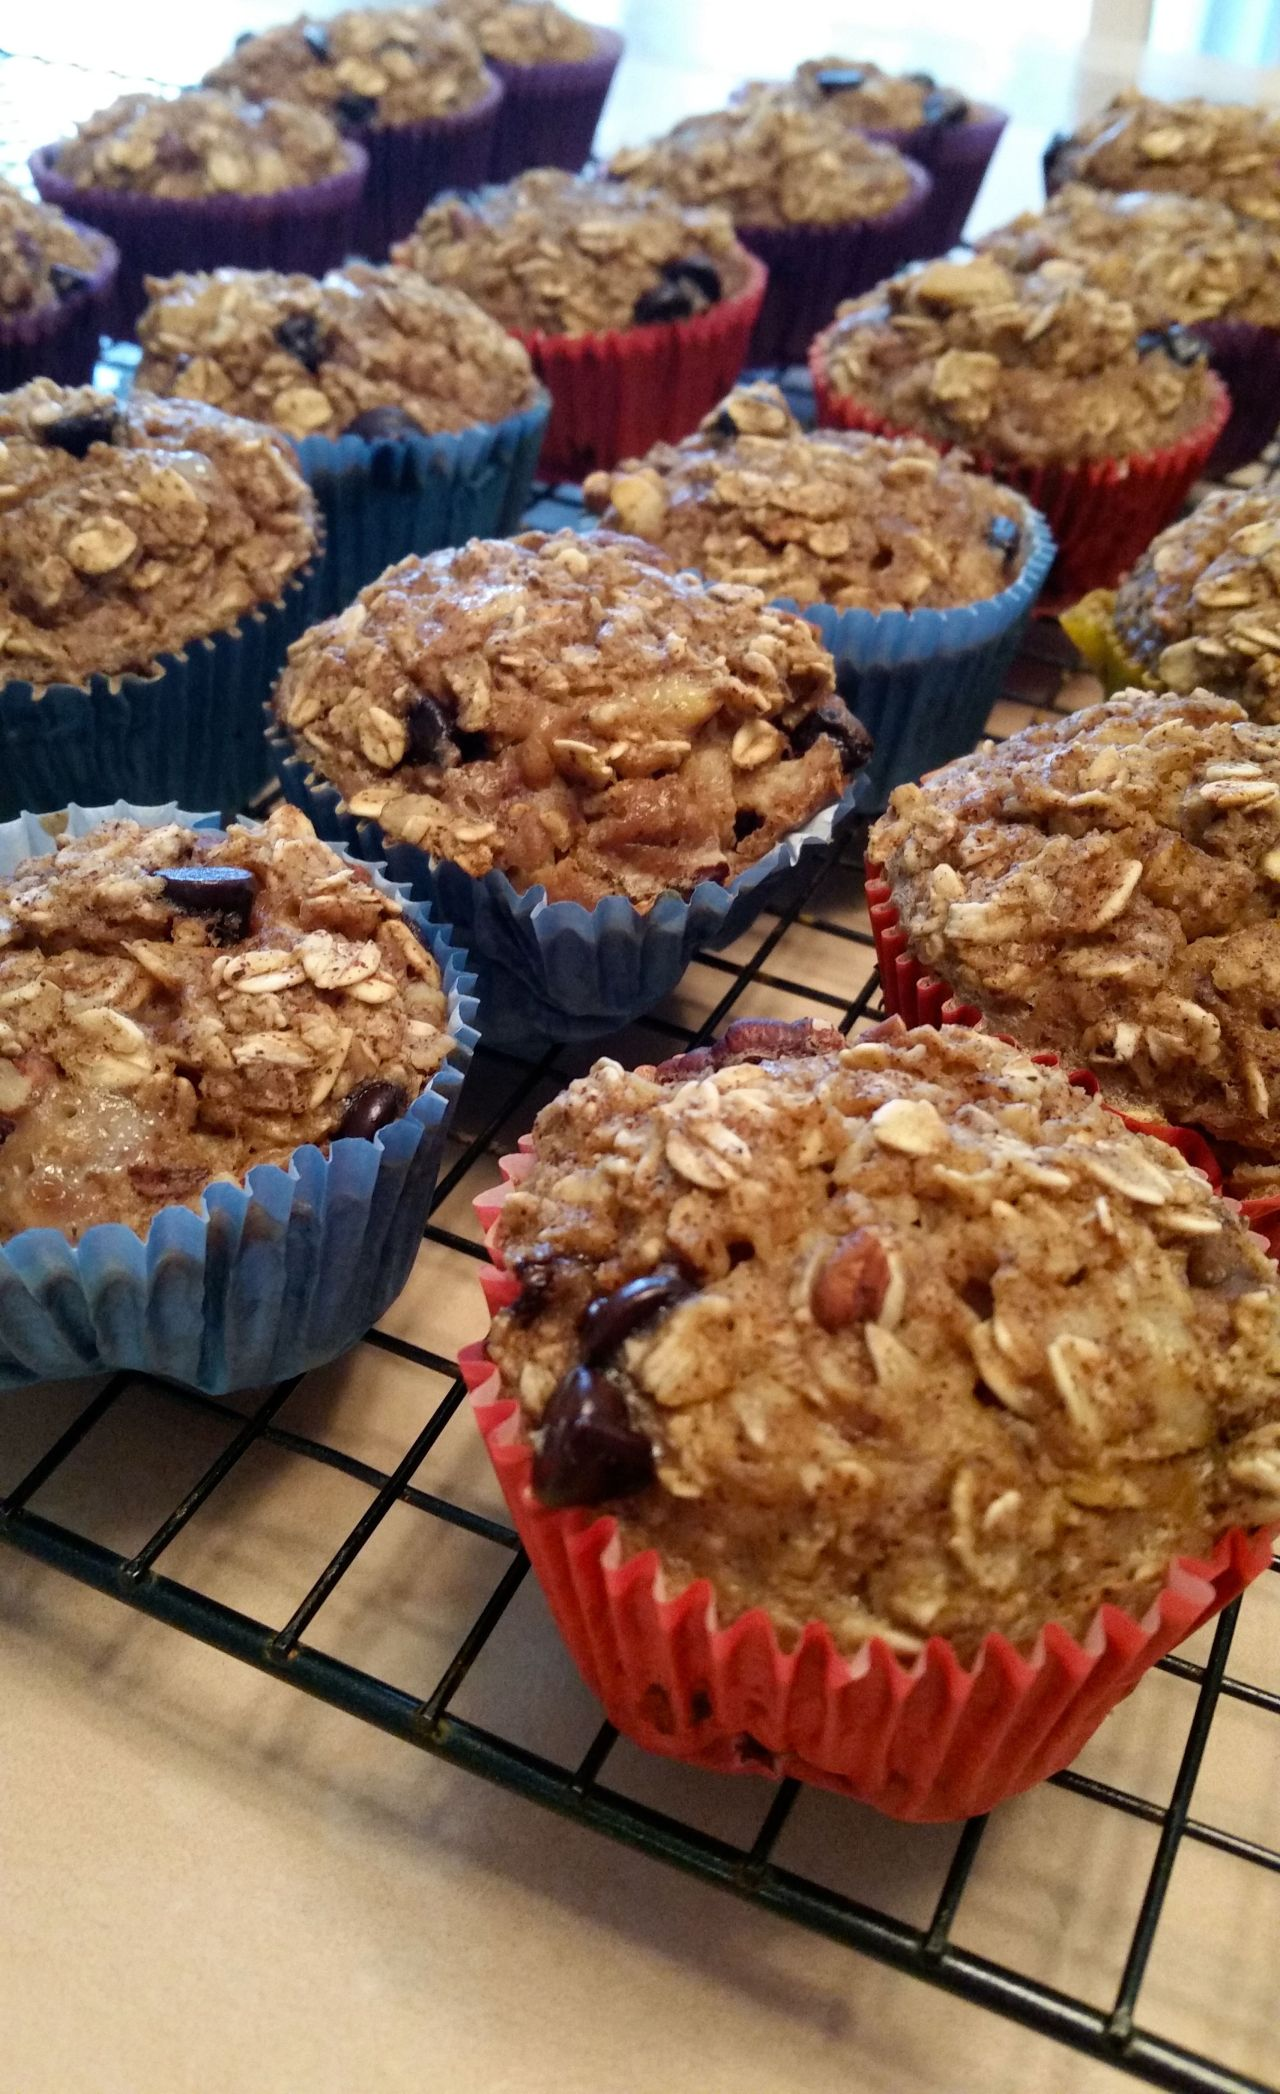 Oatmeal Muffins cooling